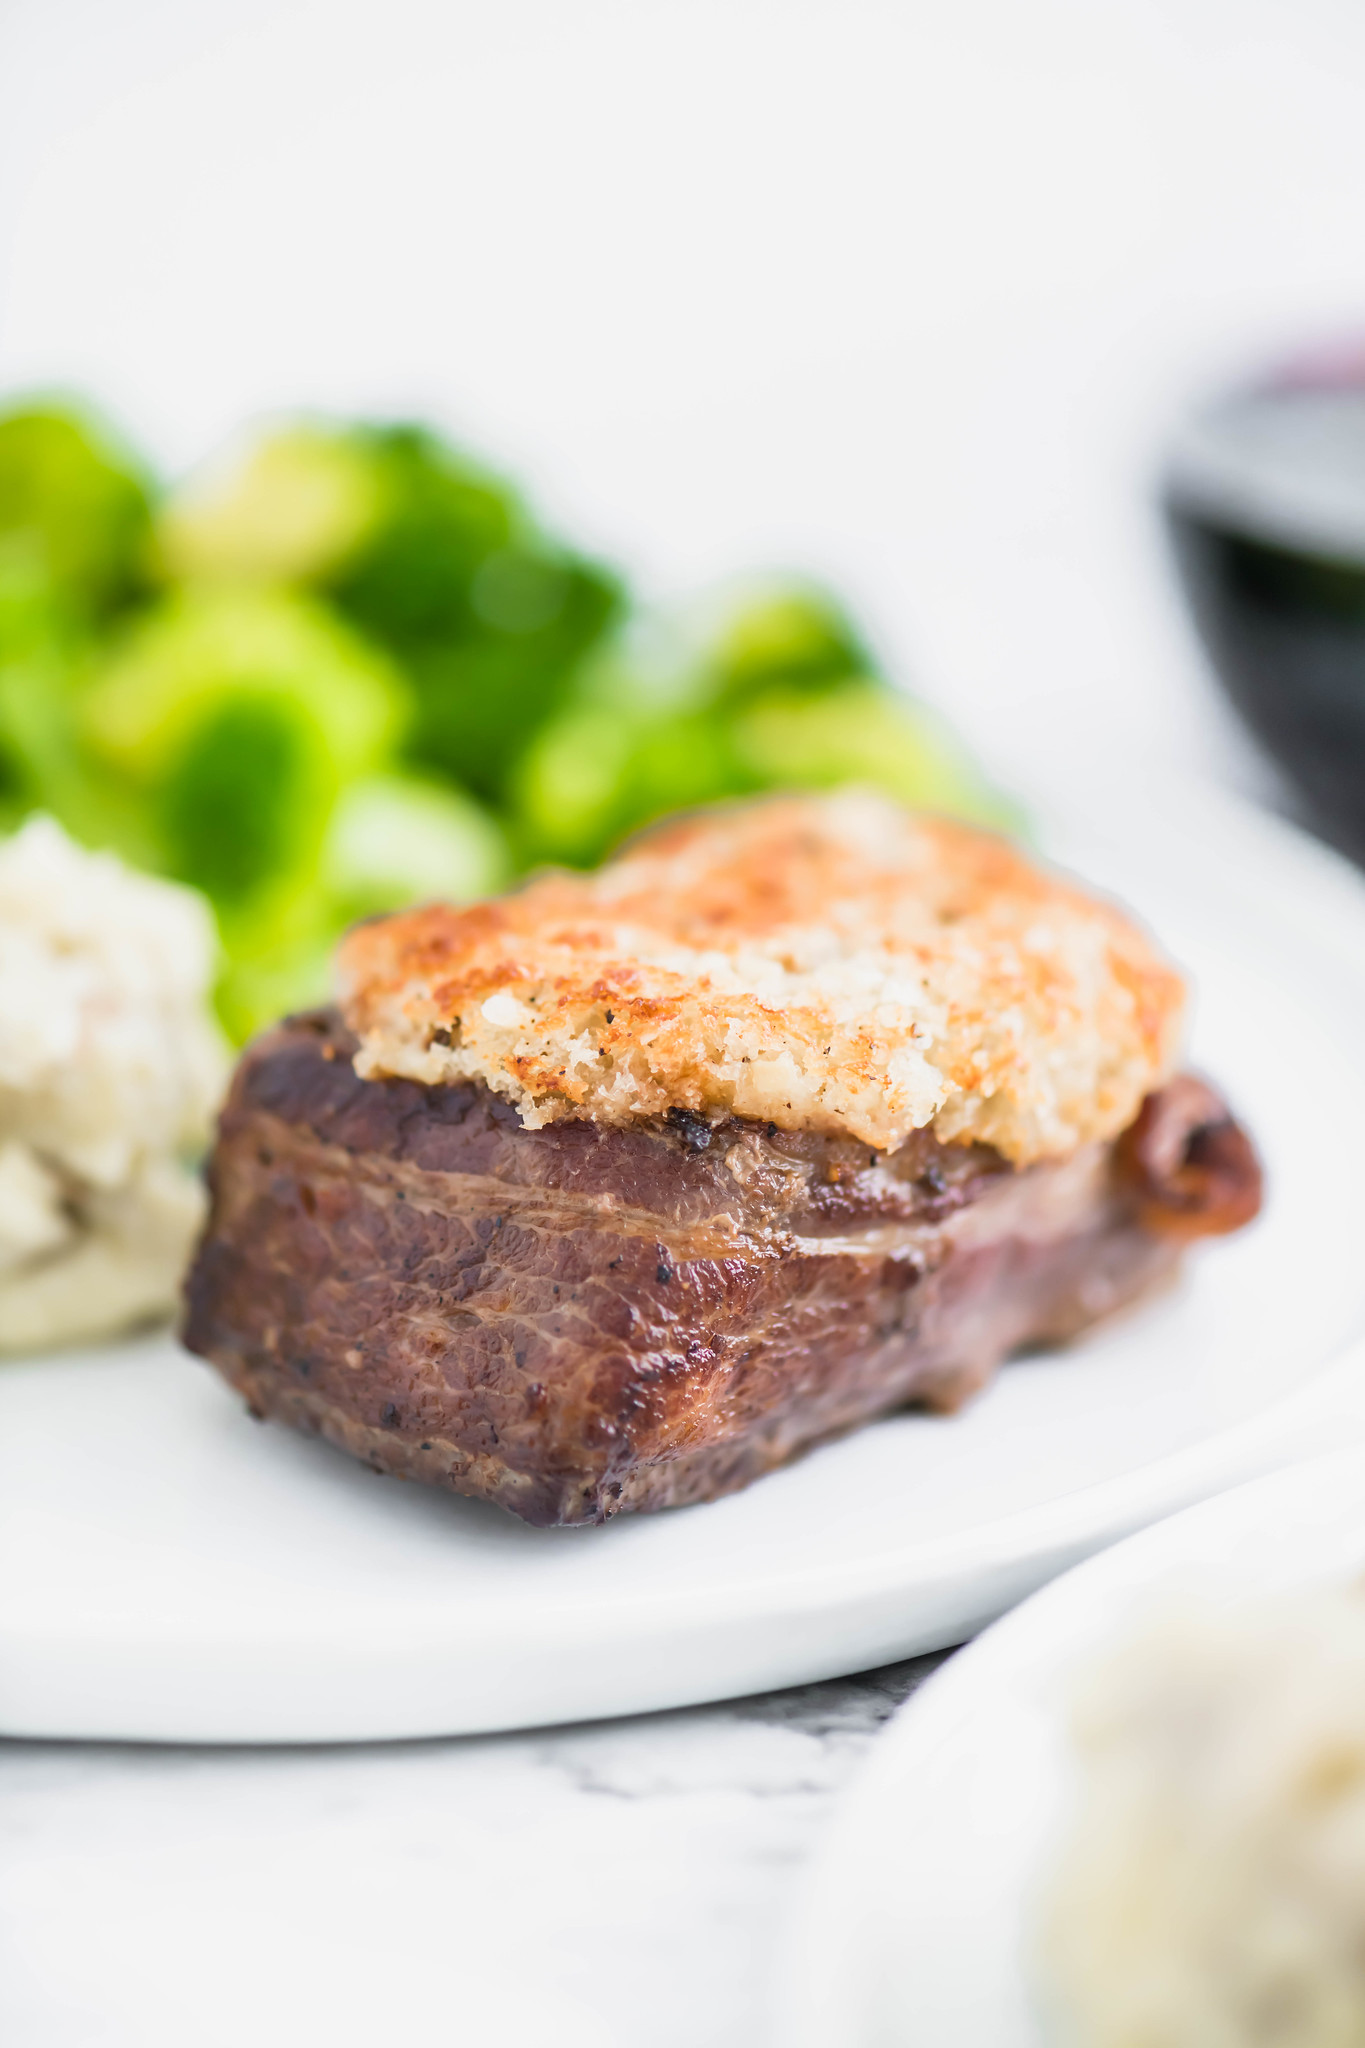 If you are having a small holiday celebration, this Parmesan Crusted Filet Mignon is a perfect option over a big traditional ham. Perfectly cooked and bursting with flavor.